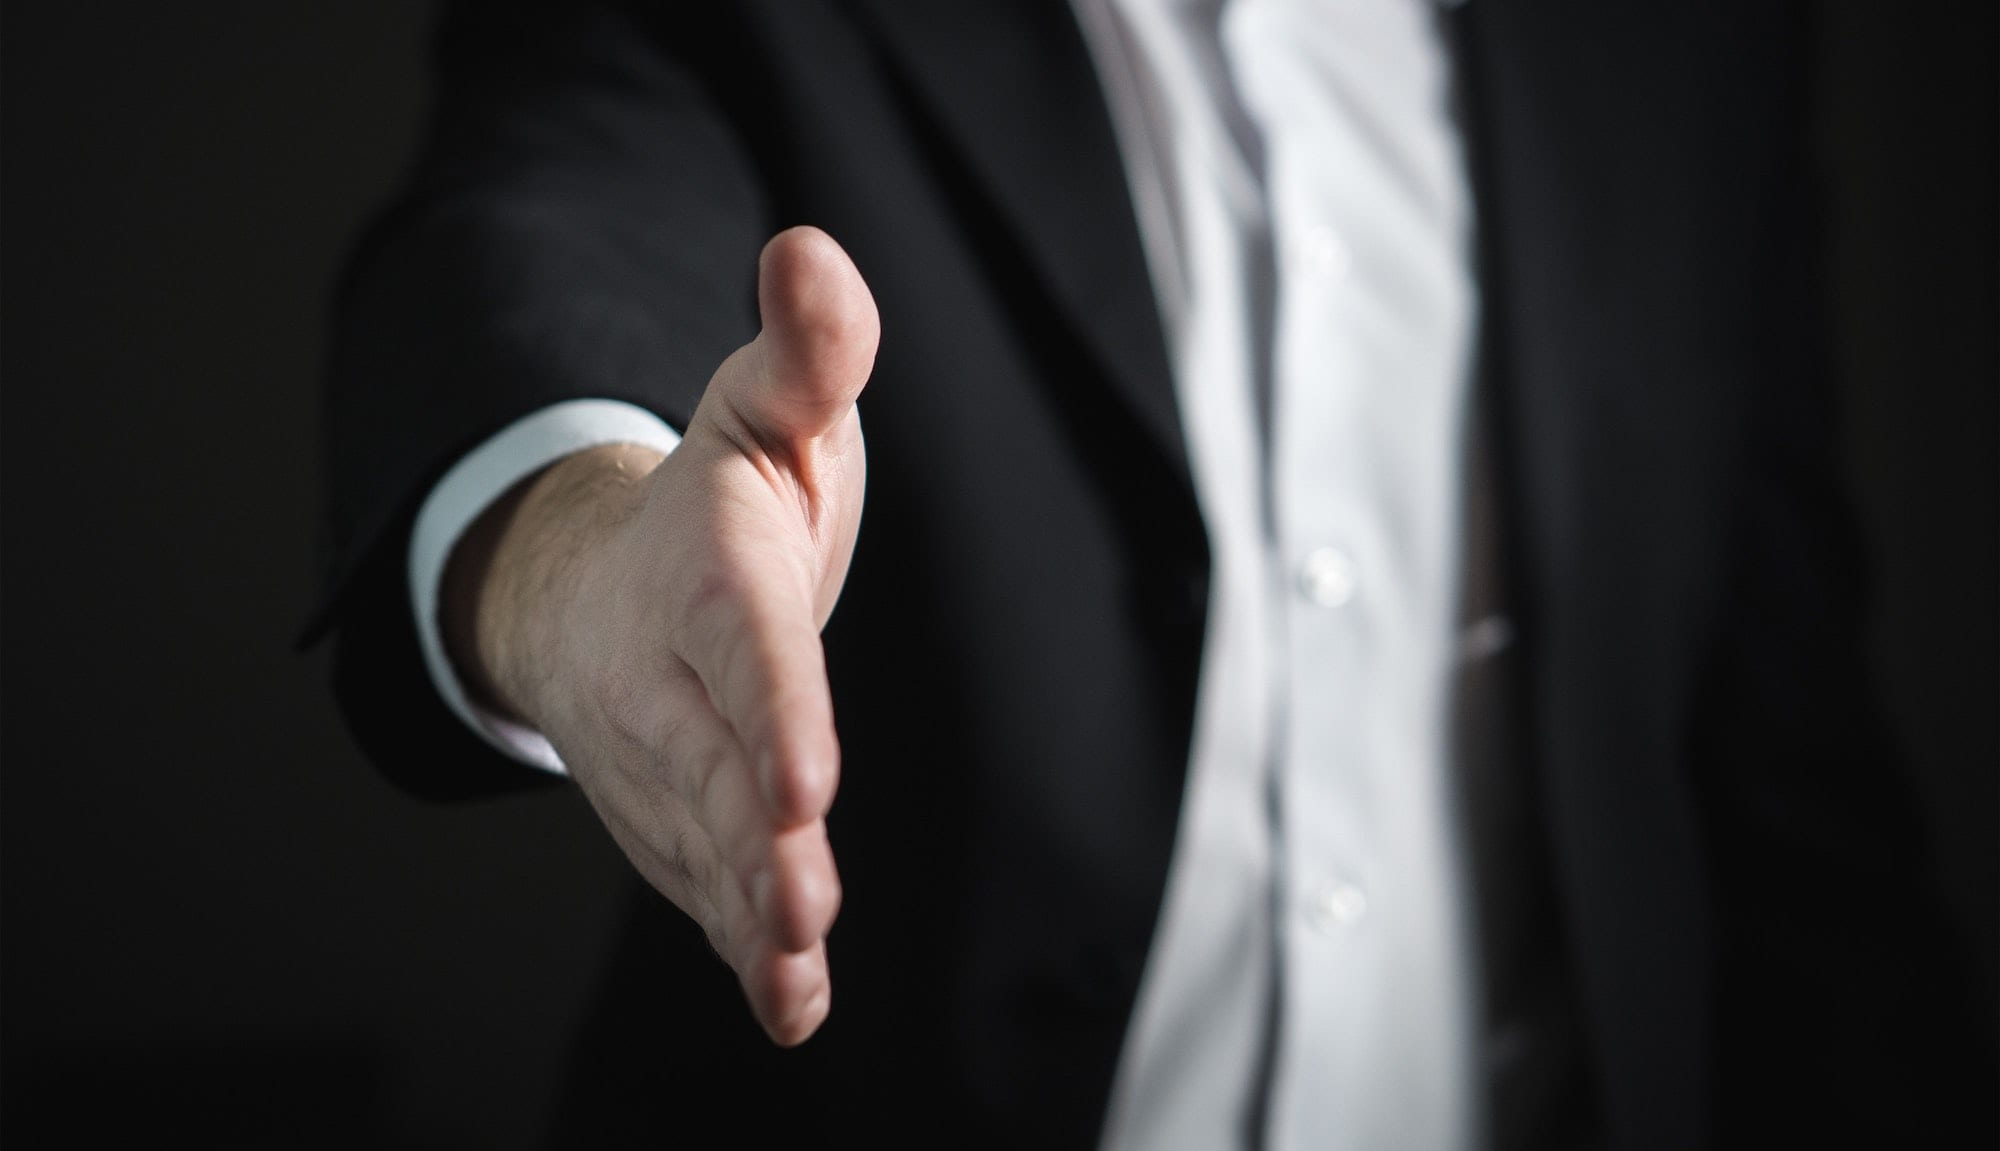 Photo of a man with an outstretched hand like he is going to give someone a handshake